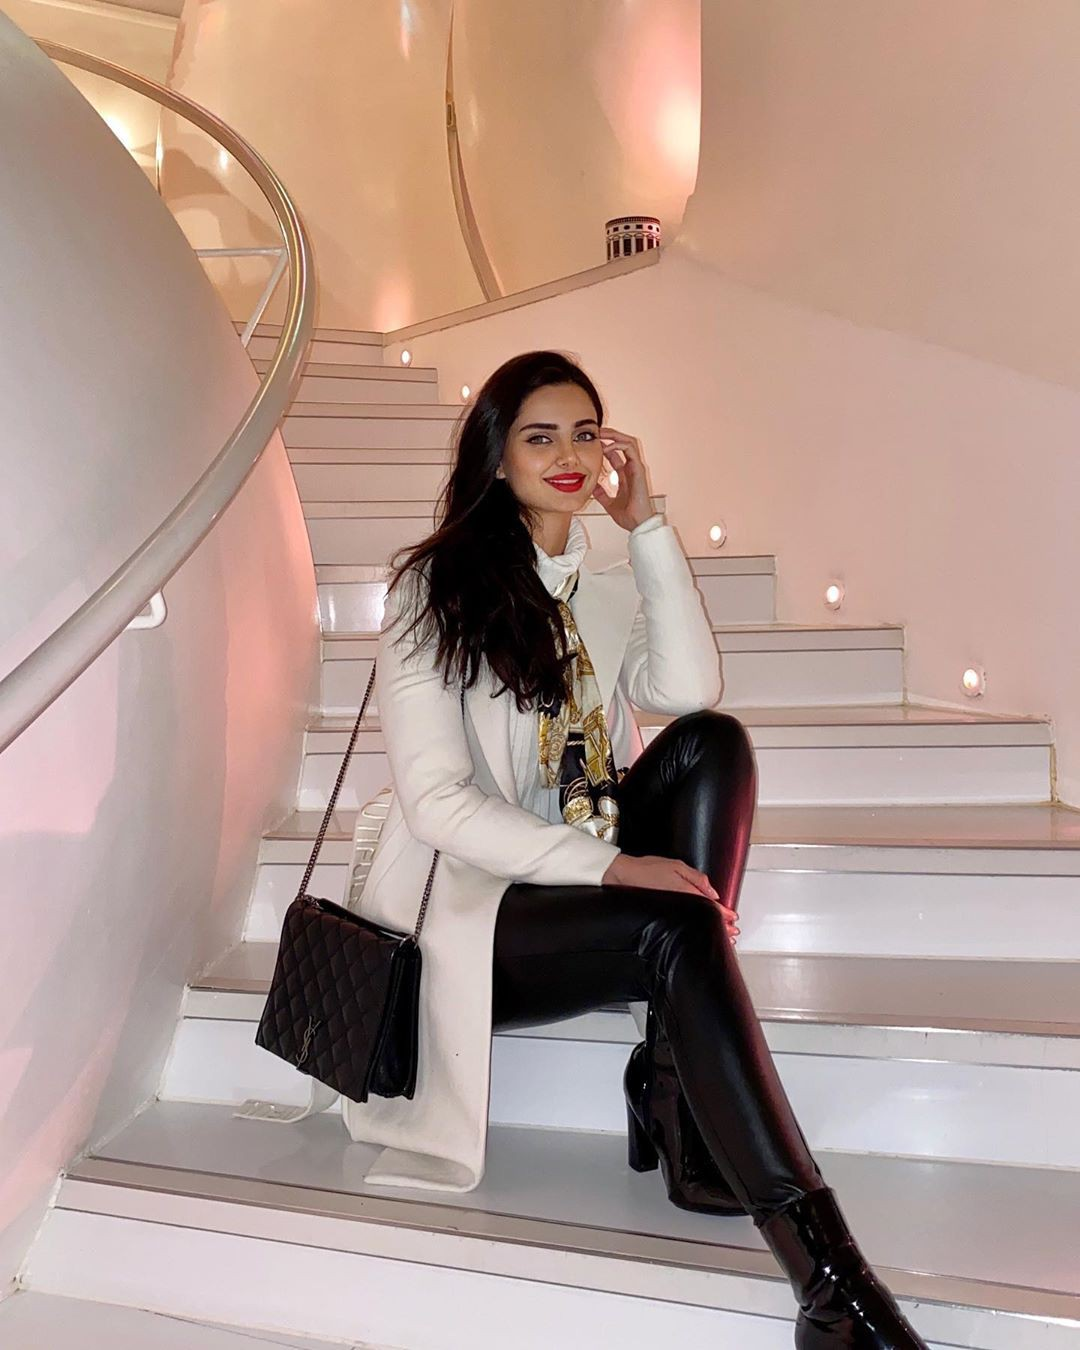 Mahlagha Jaberi legs picture, outfit ideas, outerwear